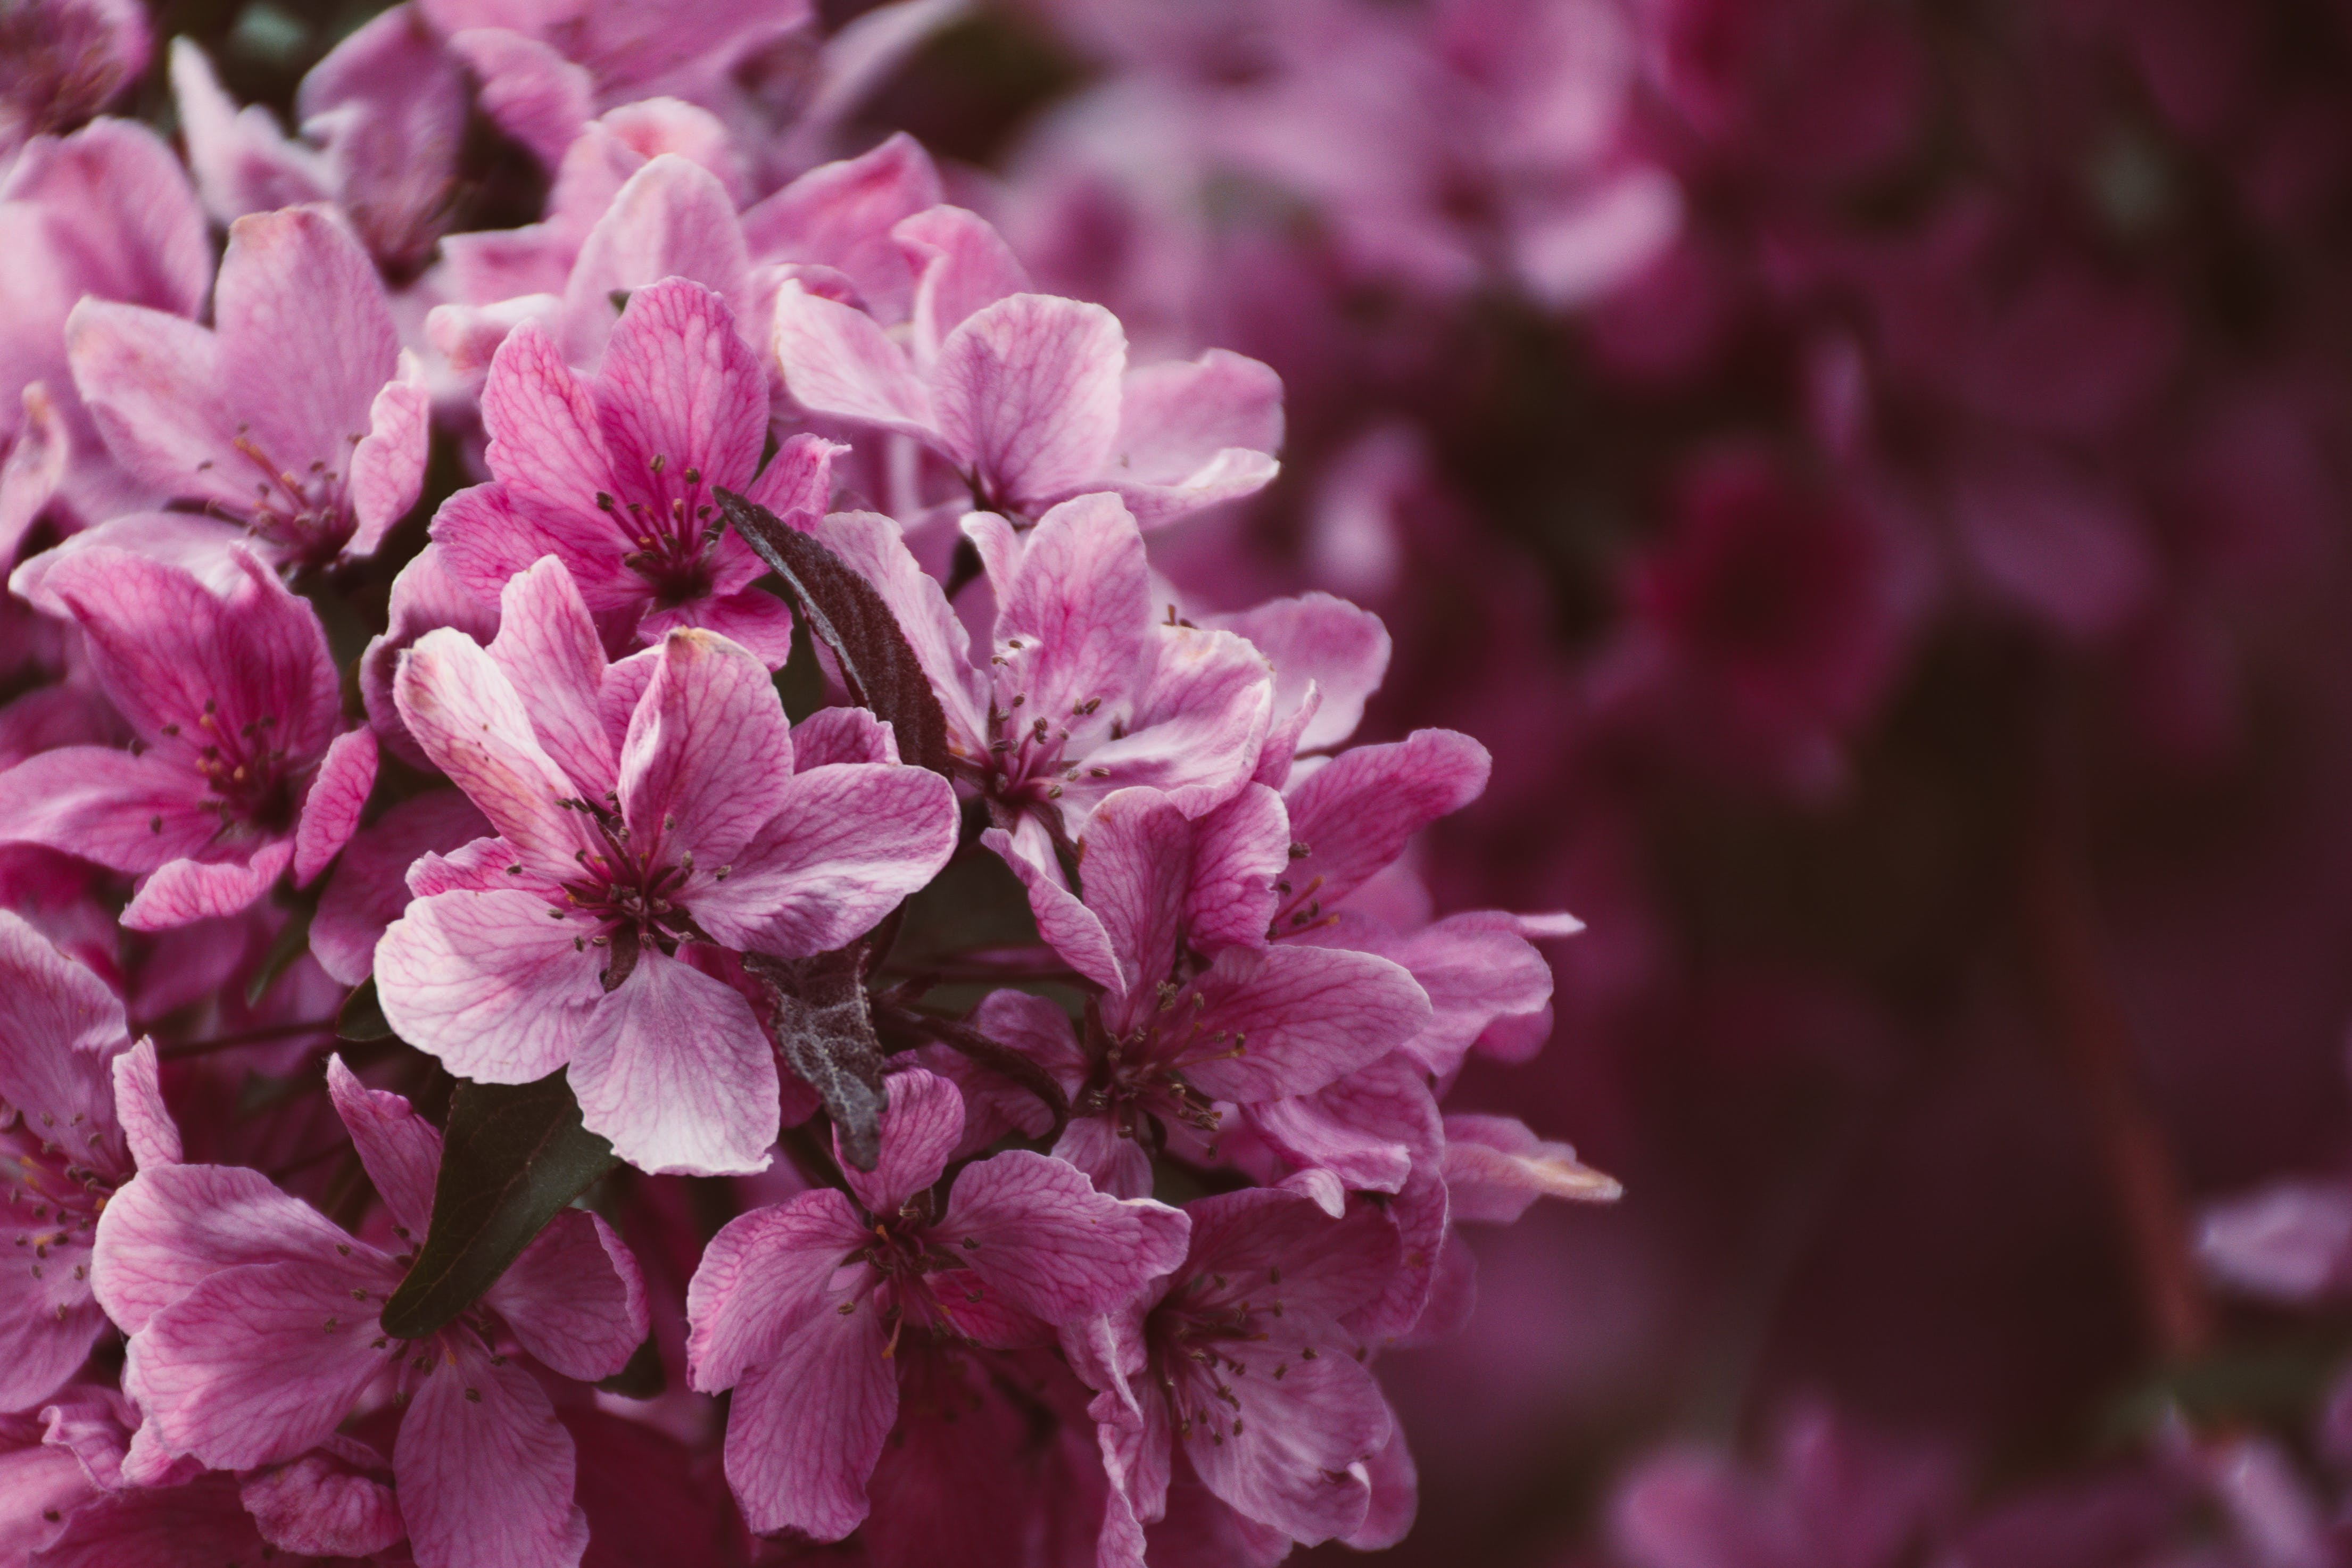 Close-up Photo Of Pink Petaled Flowers